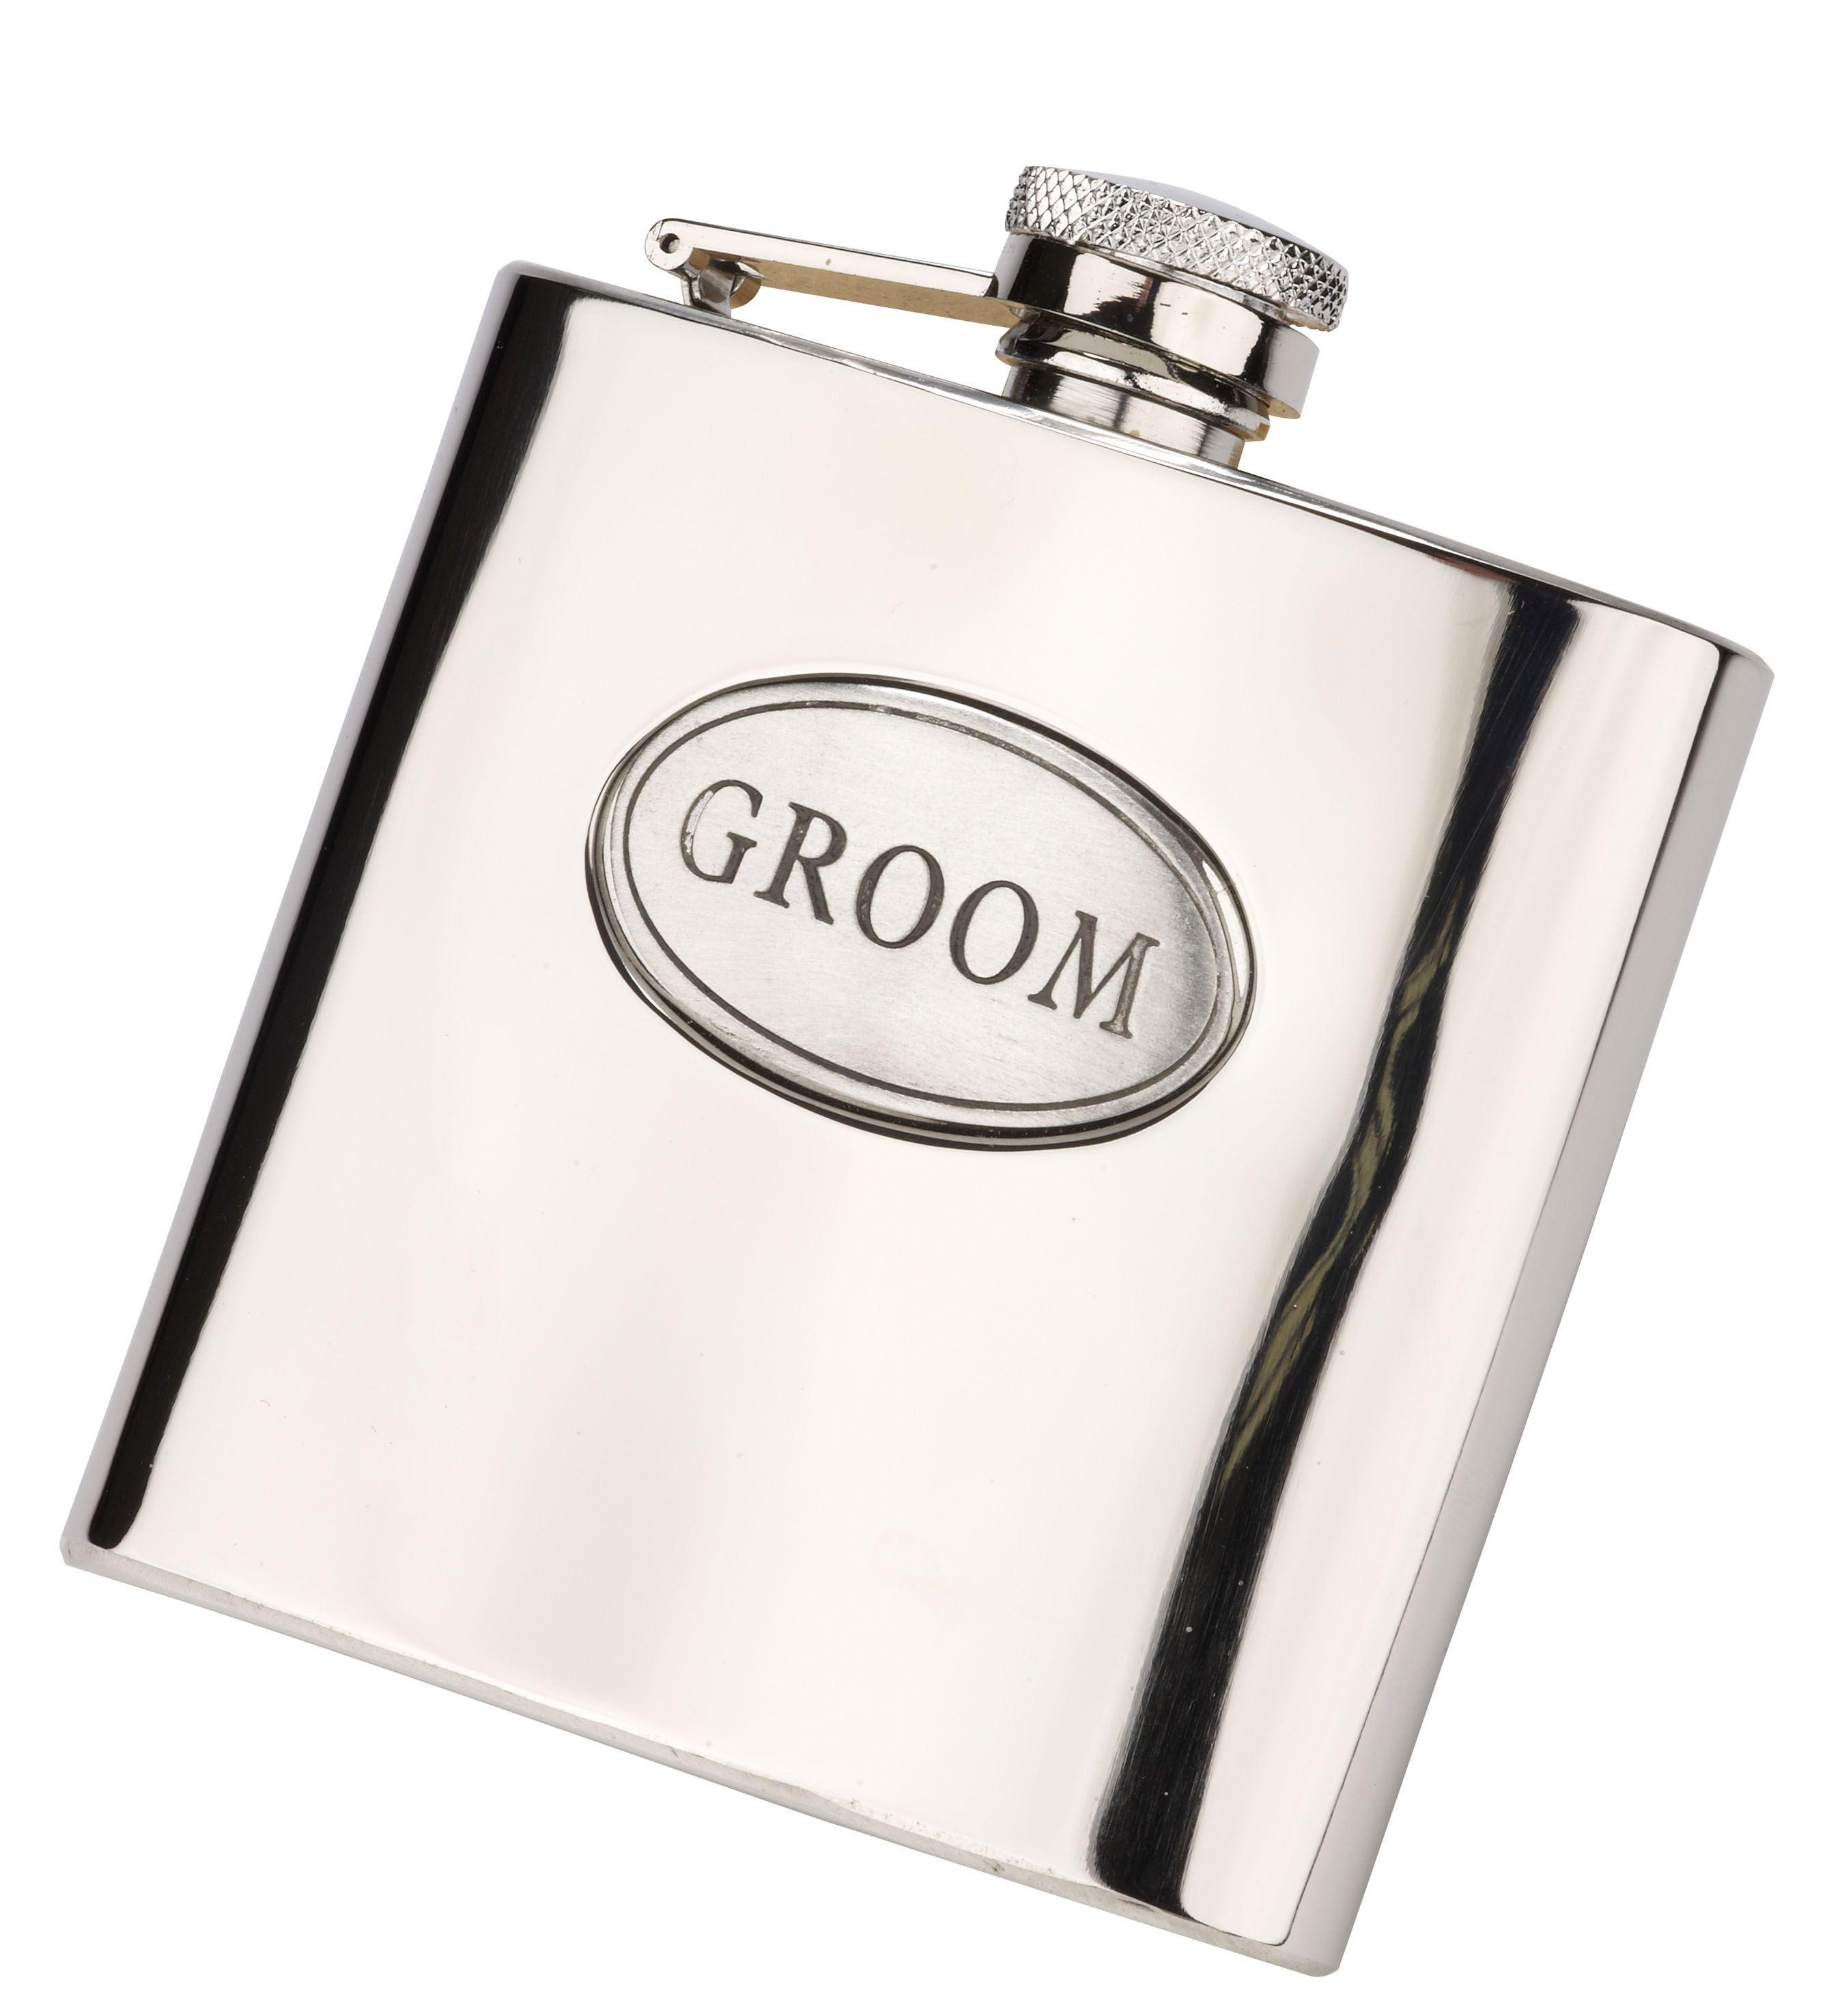 6oz Groom Hip Flask With Captive Lid Engraved Free